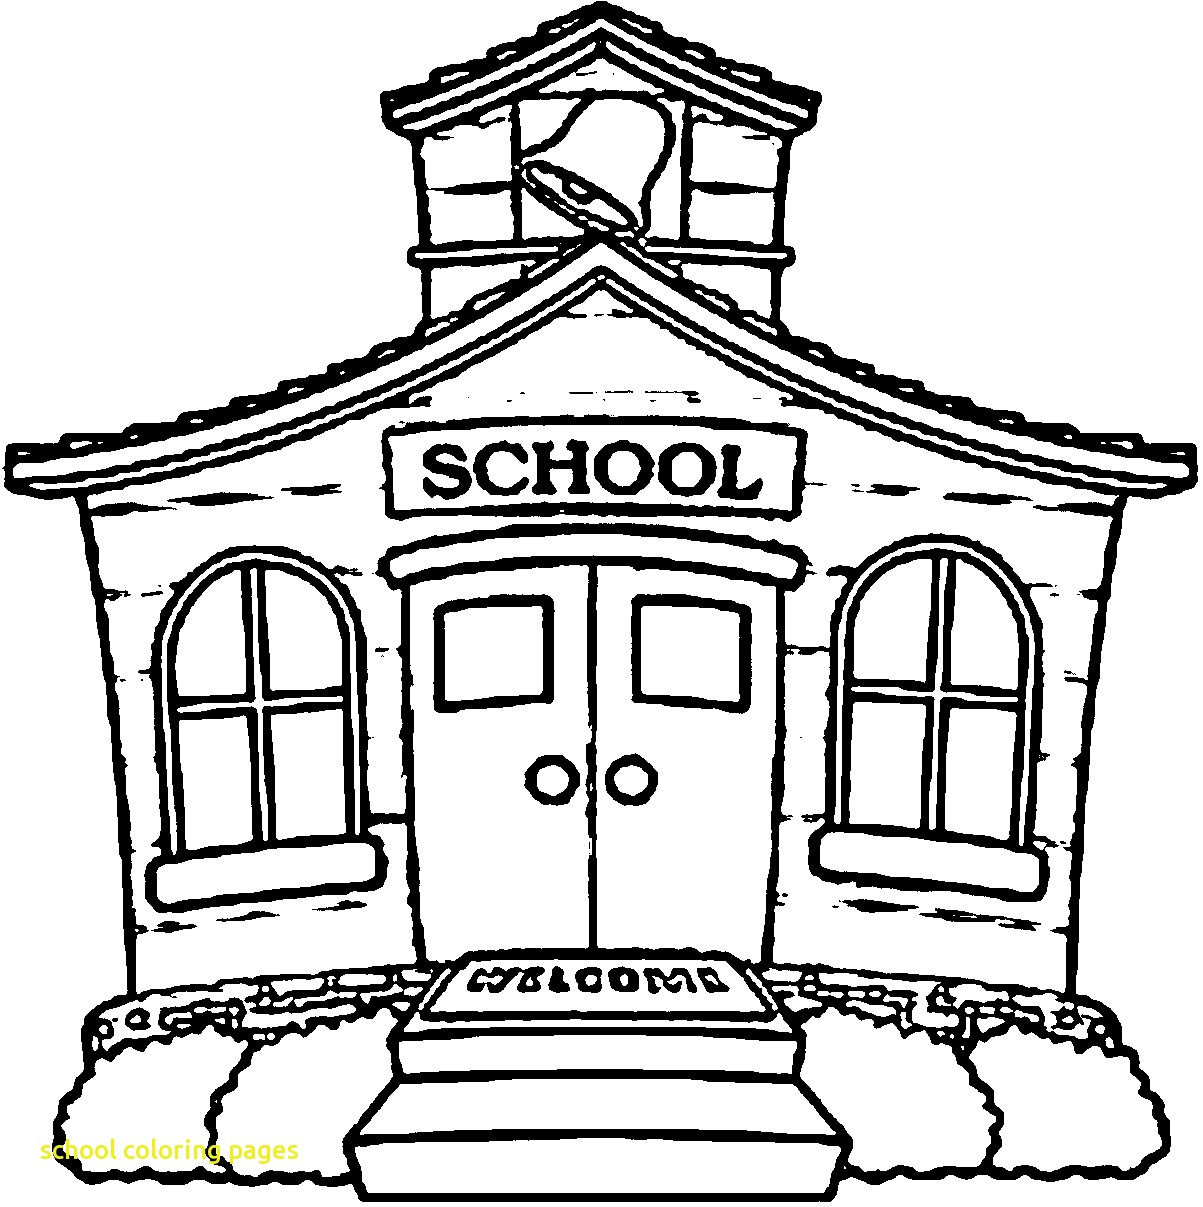 School Coloring Pages with 35 Coloring Page A School Small School Collection Of School House Coloring Pages to Print